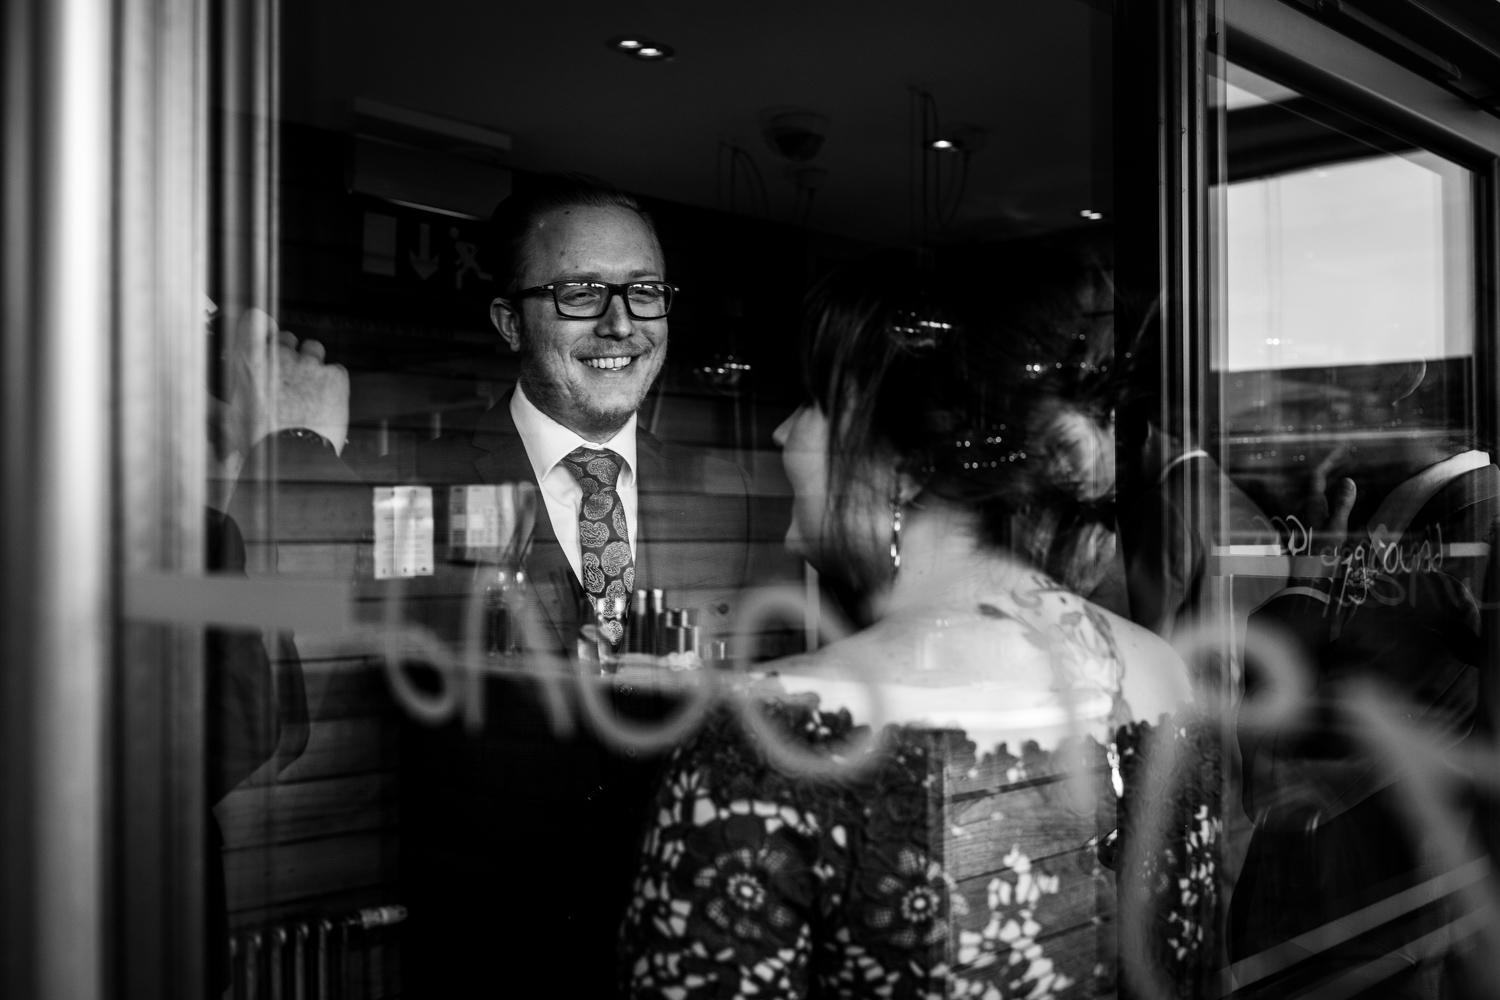 Wedding guests at great John street hotel